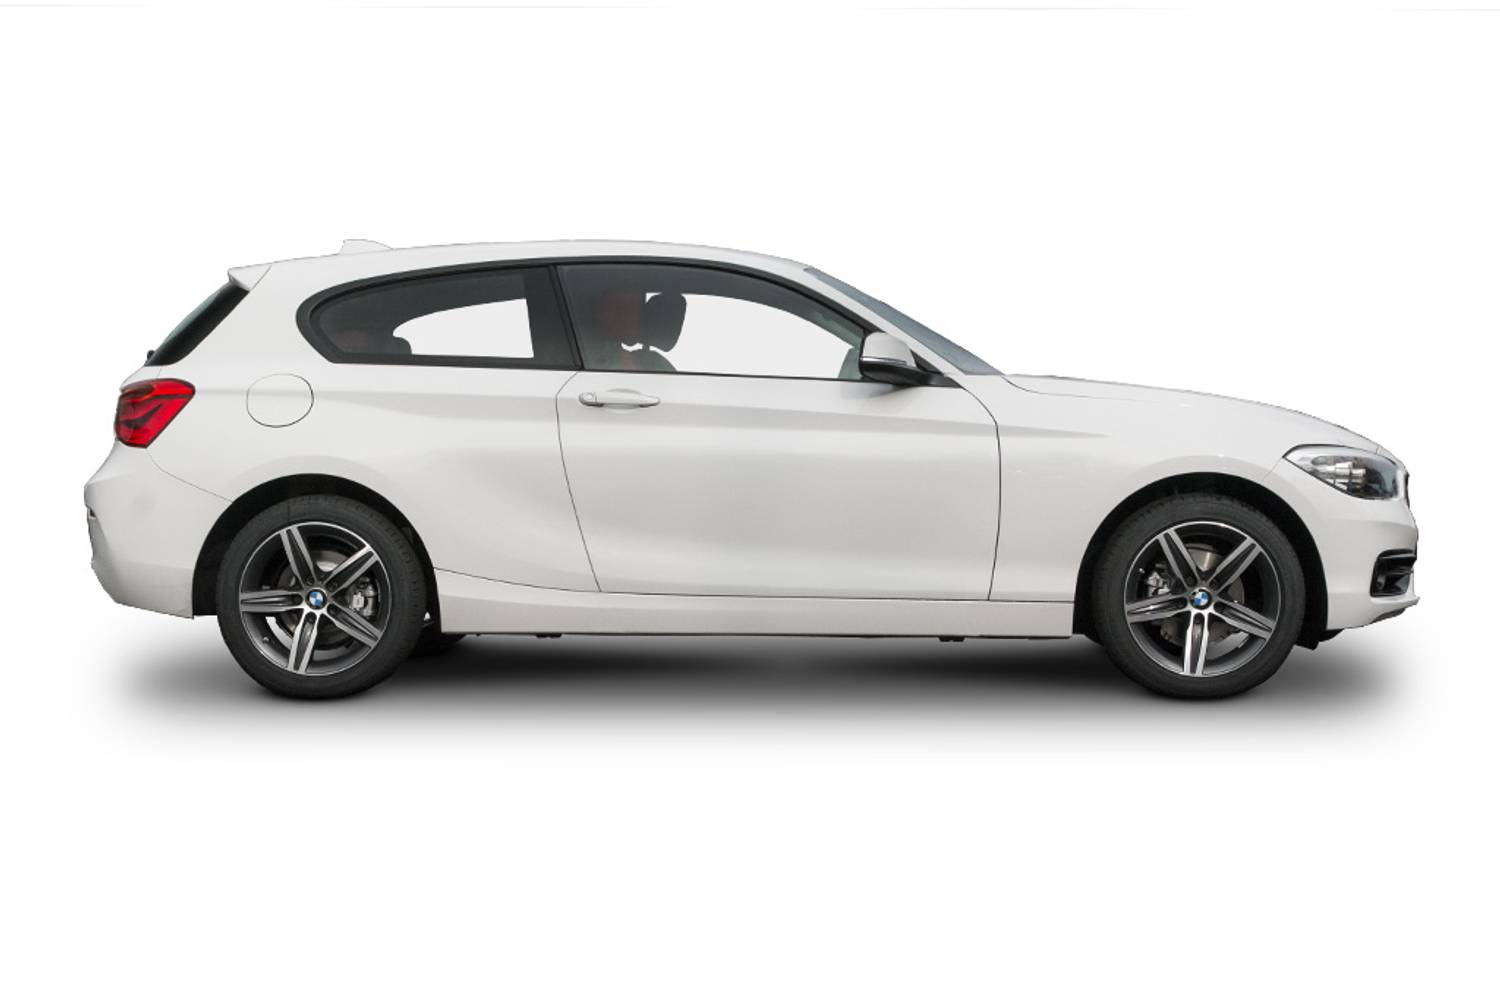 BMW 1 Series Hatchback 3dr Profile